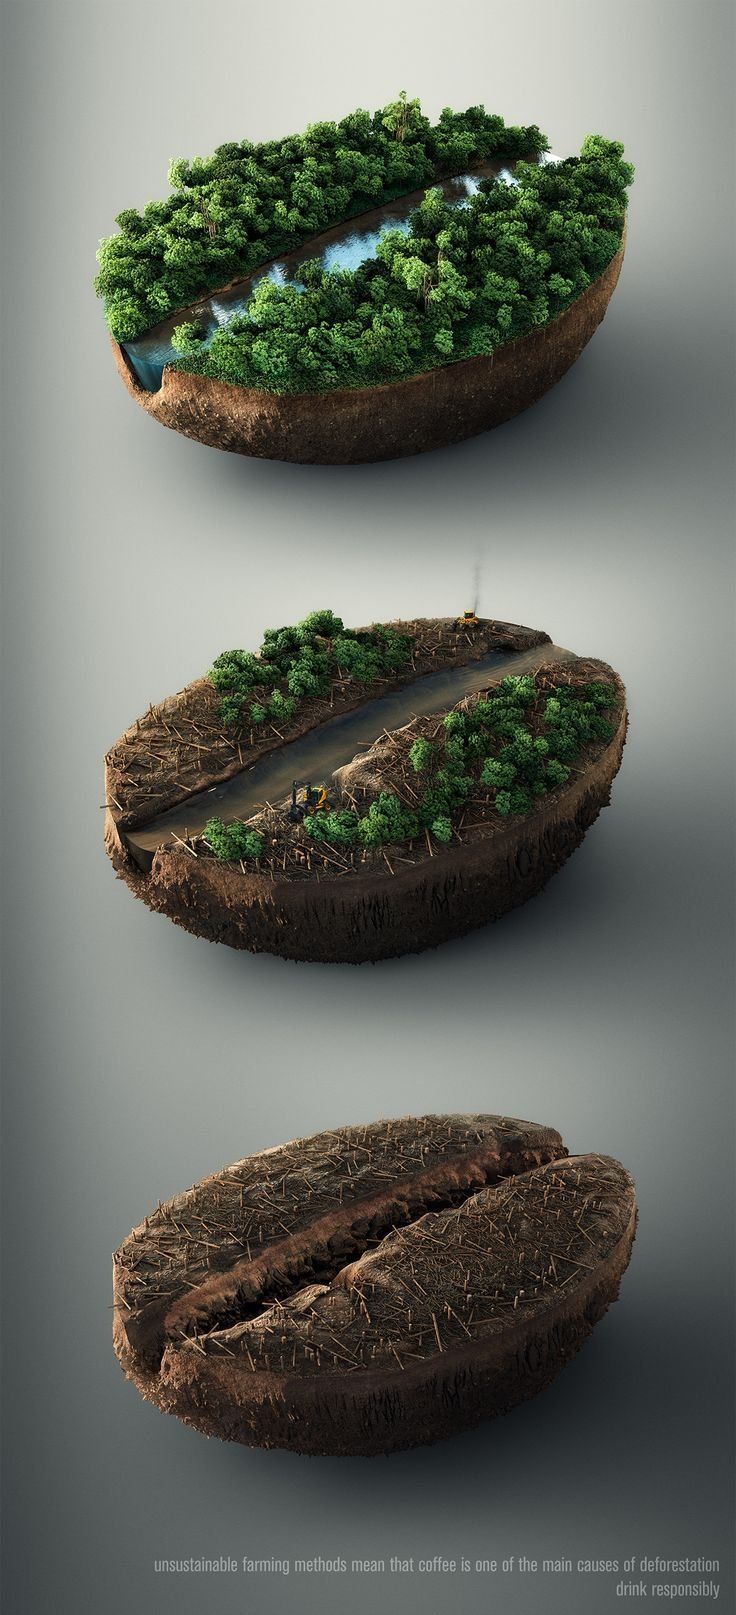 cool A set of three CGI images showing the effects of deforestation, revealing a coff...